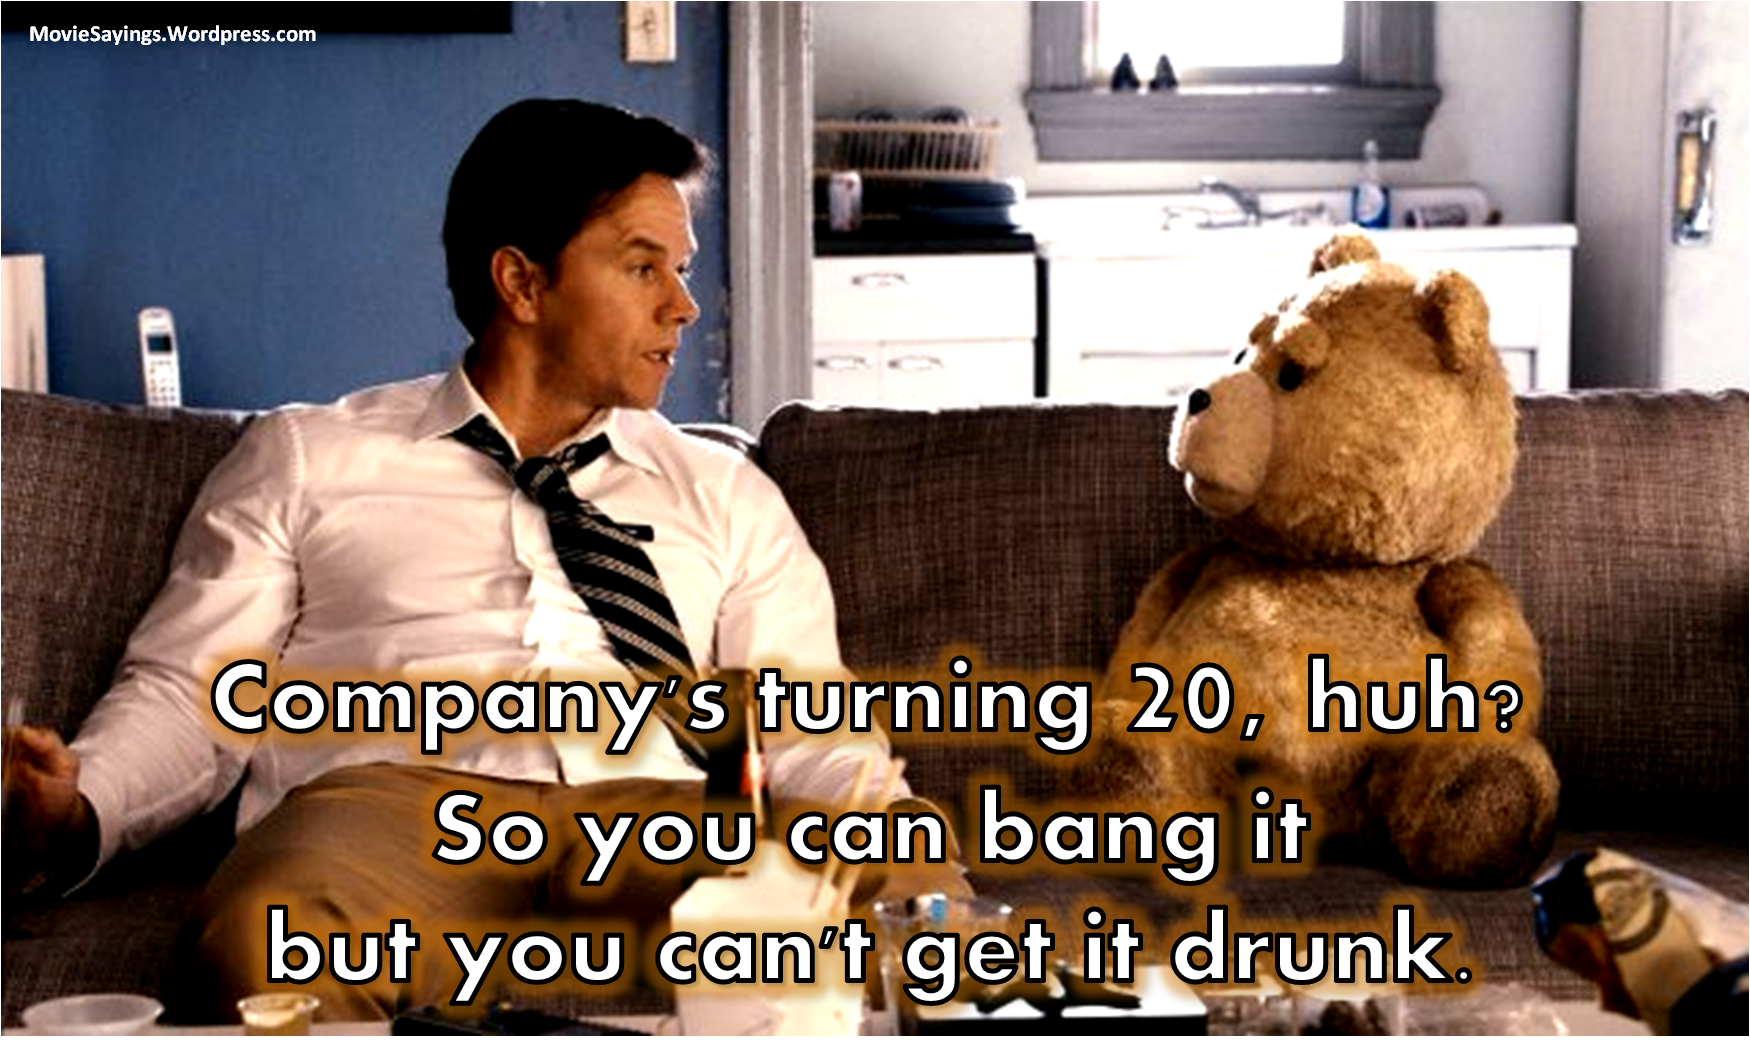 Best Ted Movie Quotes 2012 ~ ted 2012 movie quote | QuotesDump